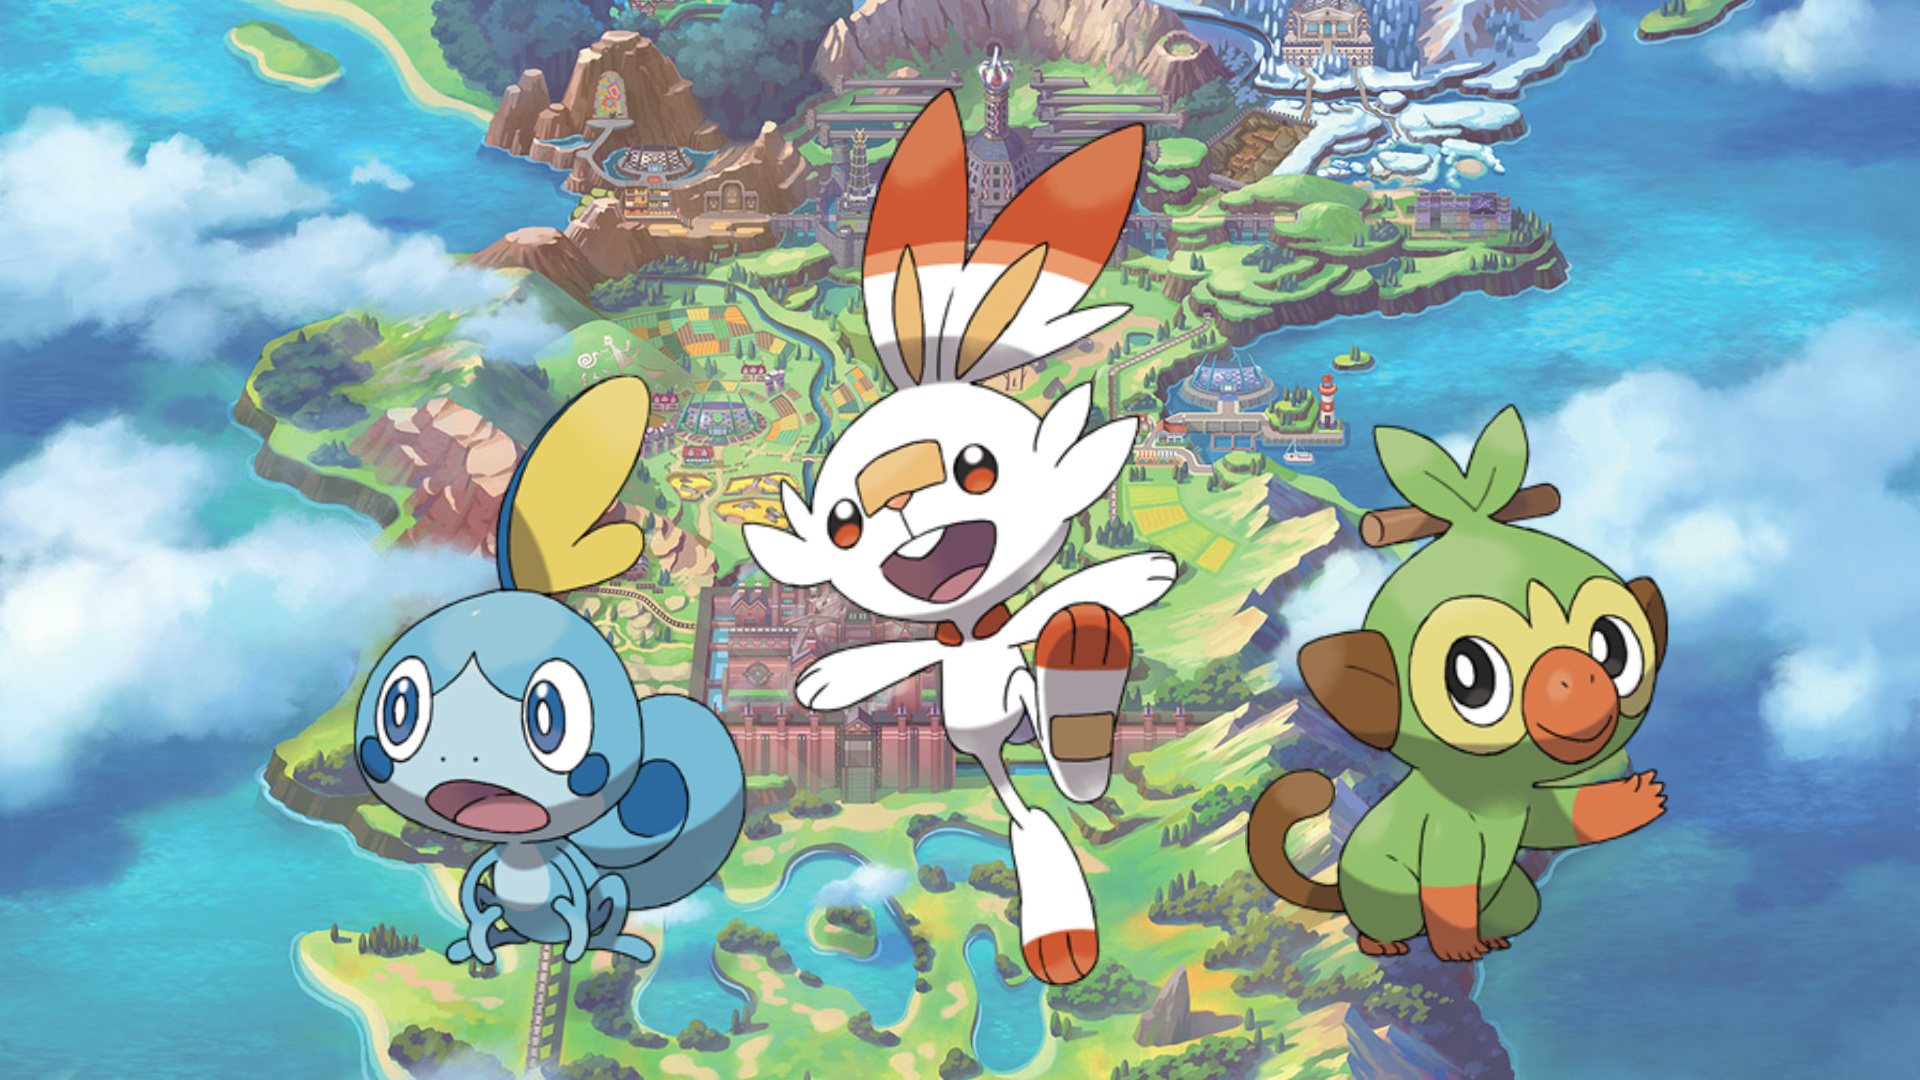 Fans Will Get The Chance To Name A New Move In Pokémon Sword